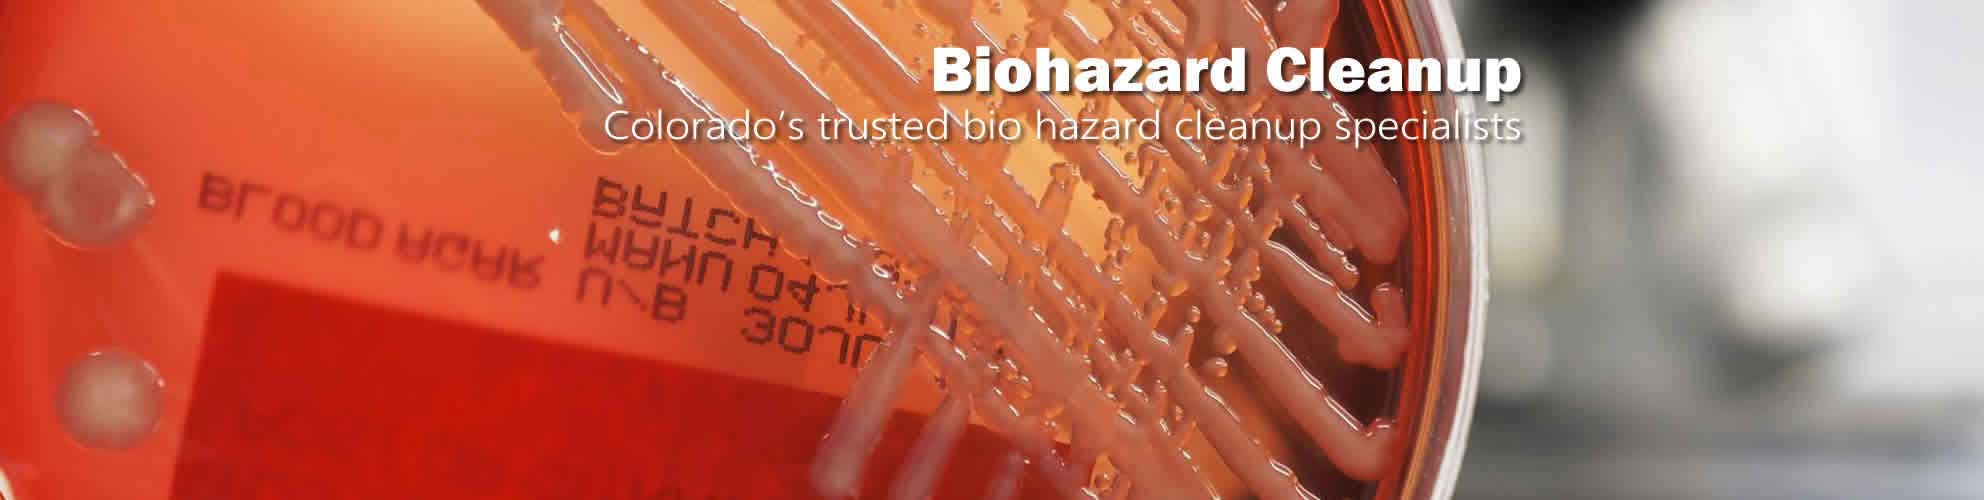 bio hazard cleanup Denver